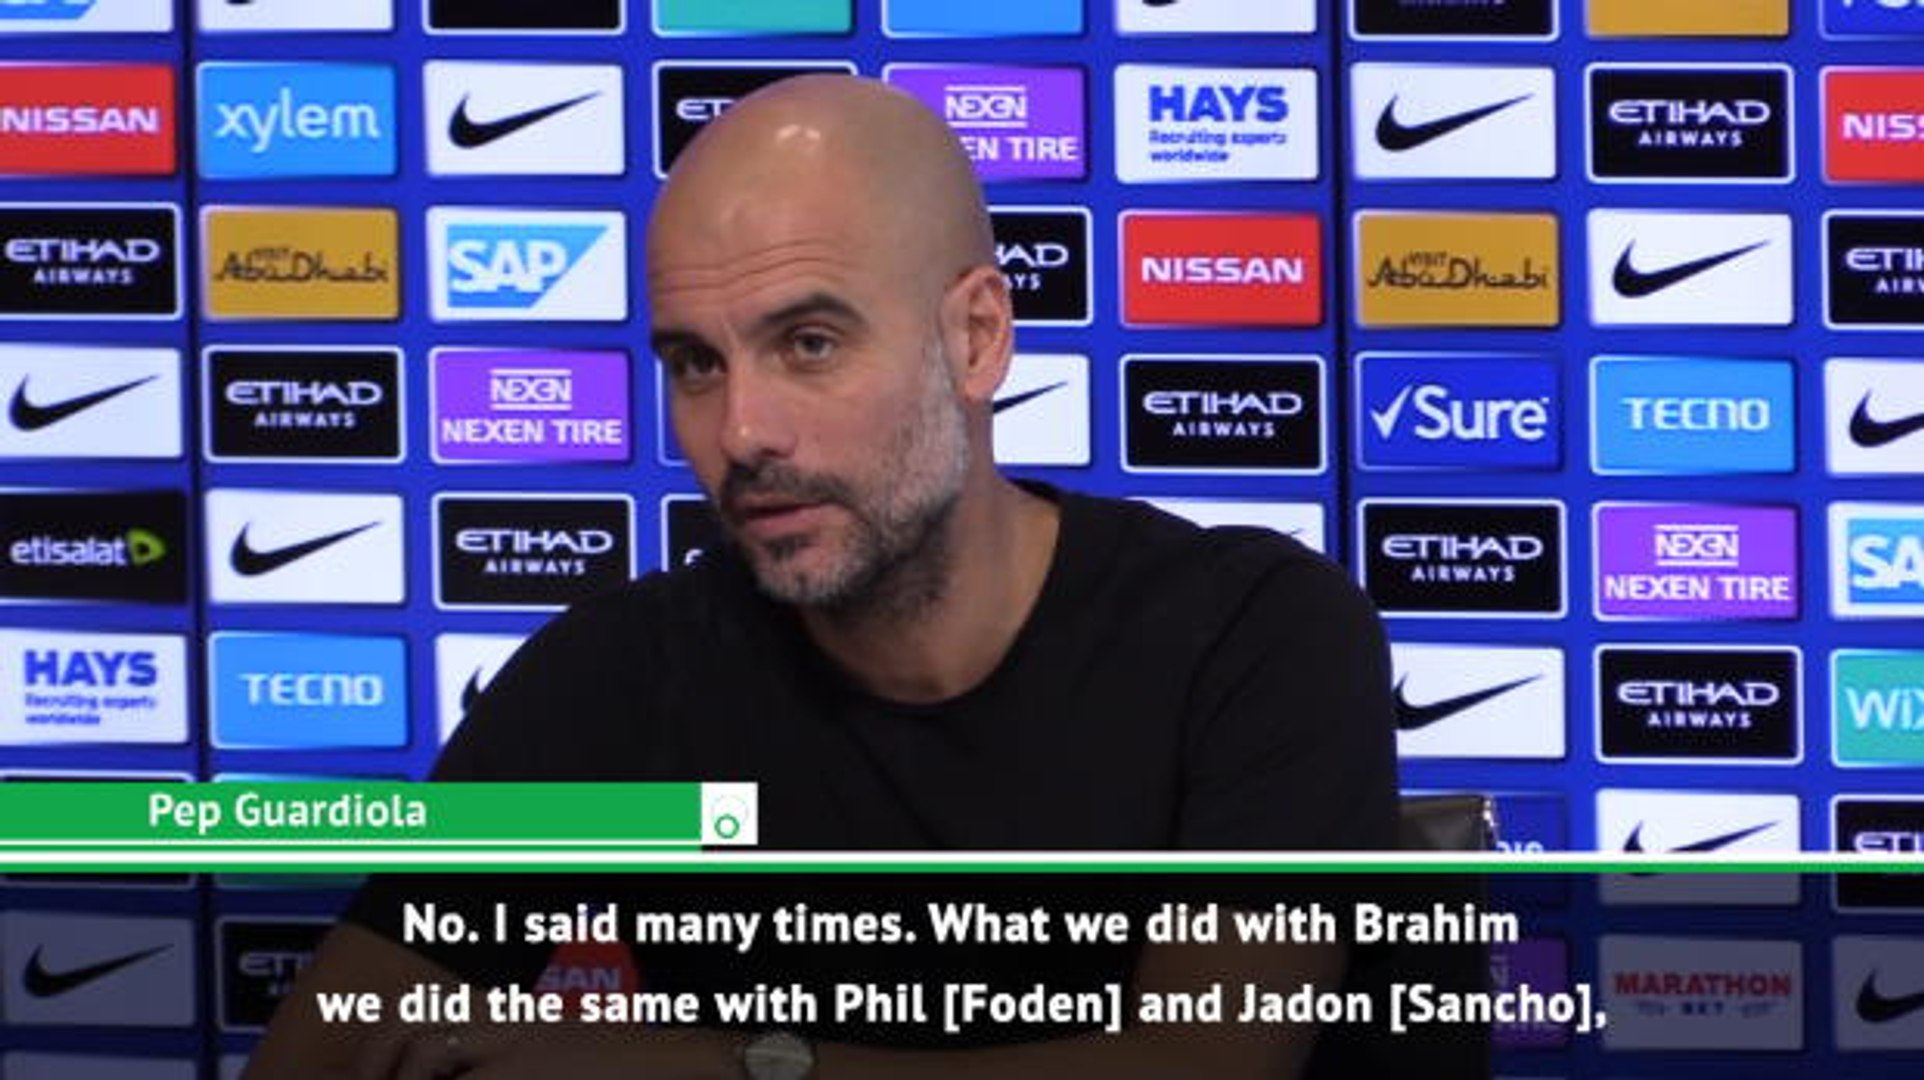 Going to Real Madrid is not a bad step - Guardiola on Brahim Diaz